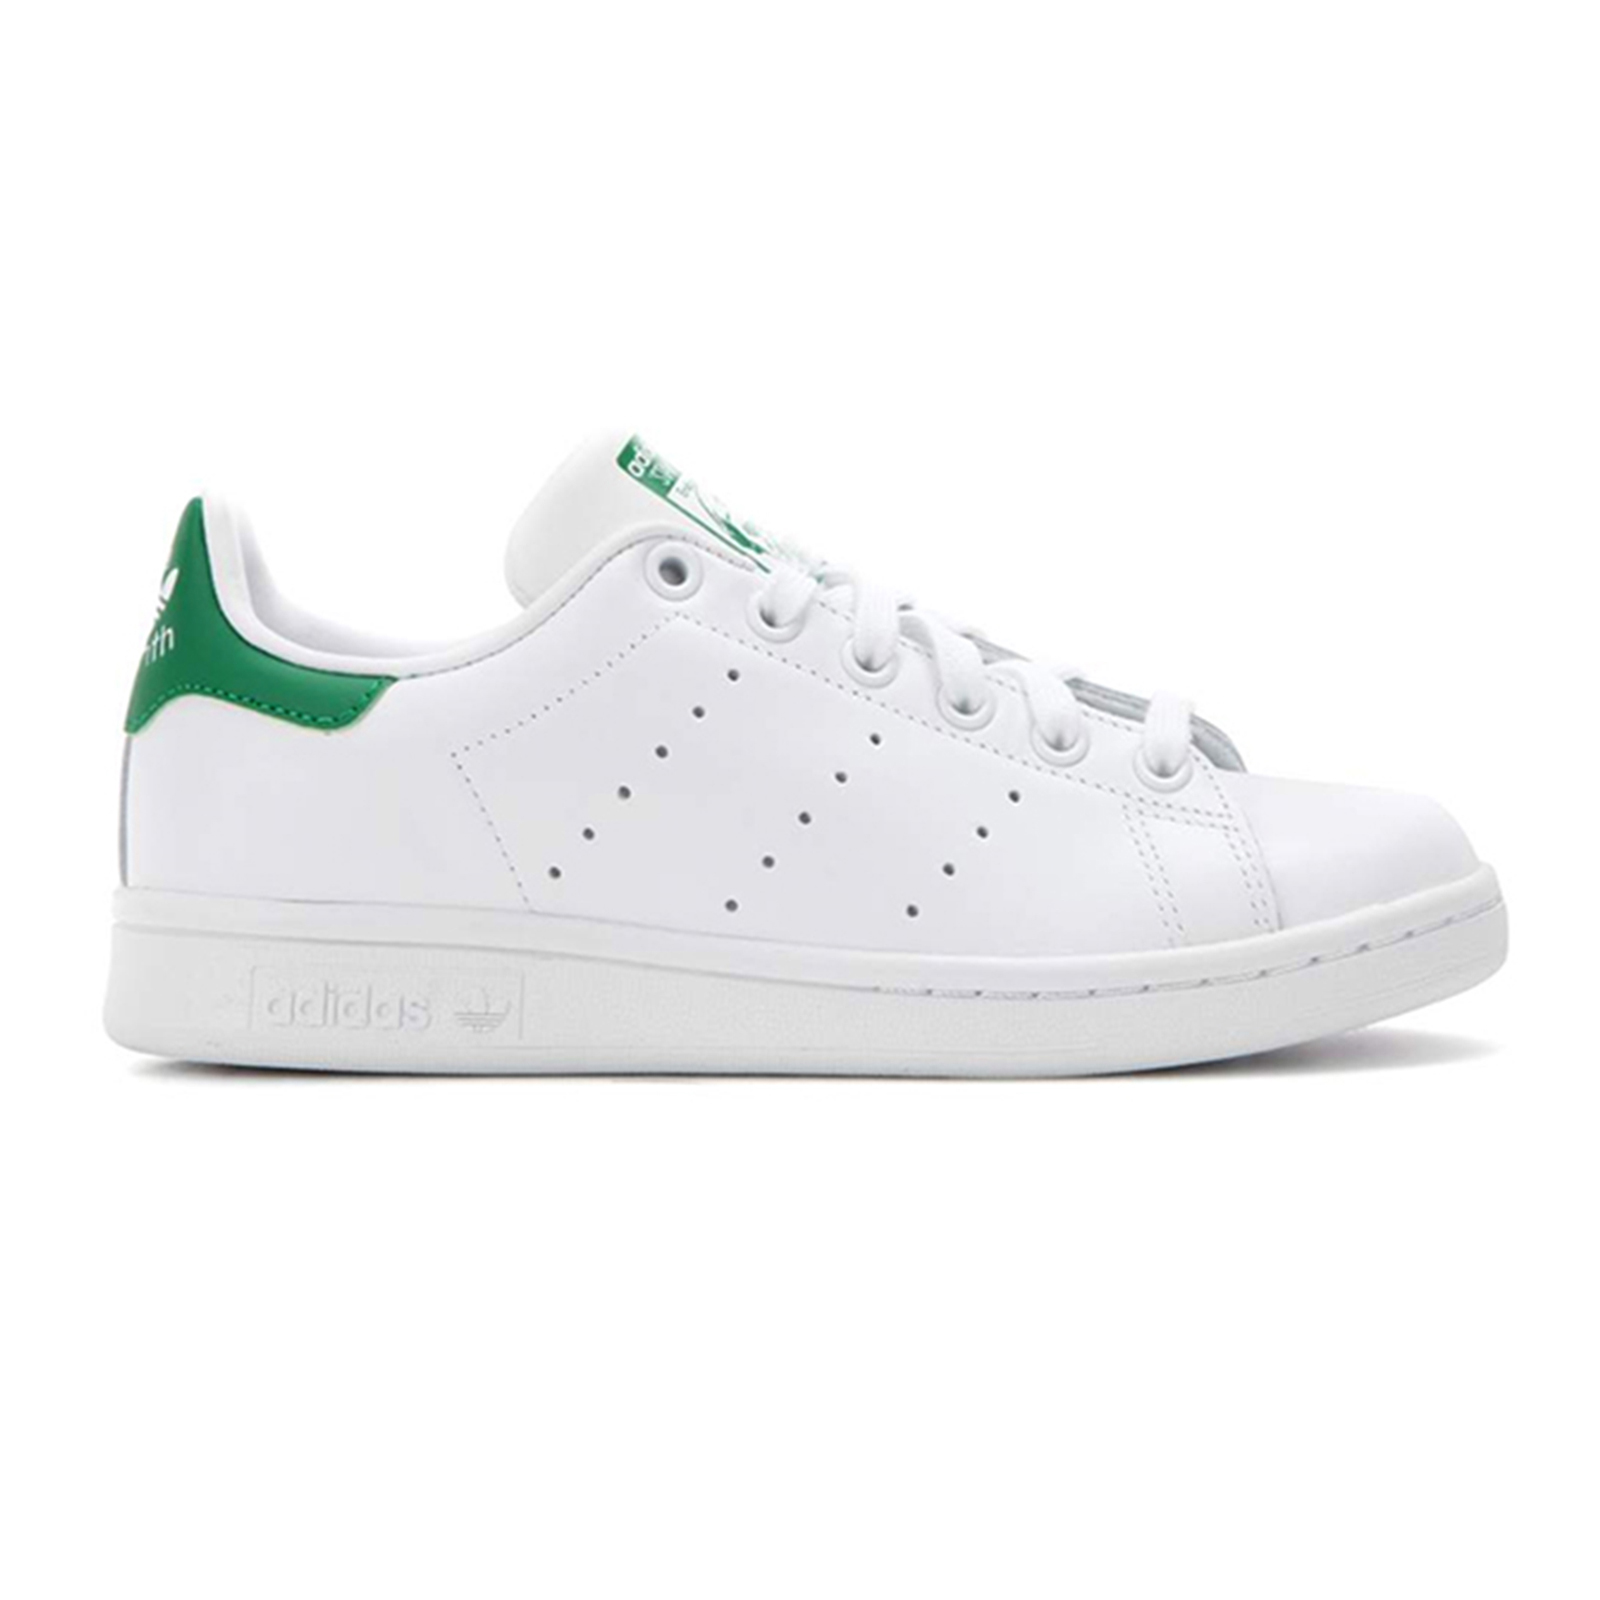 428a3346ff7 Why the Adidas Stan Smith is Fashions Favourite Trainer